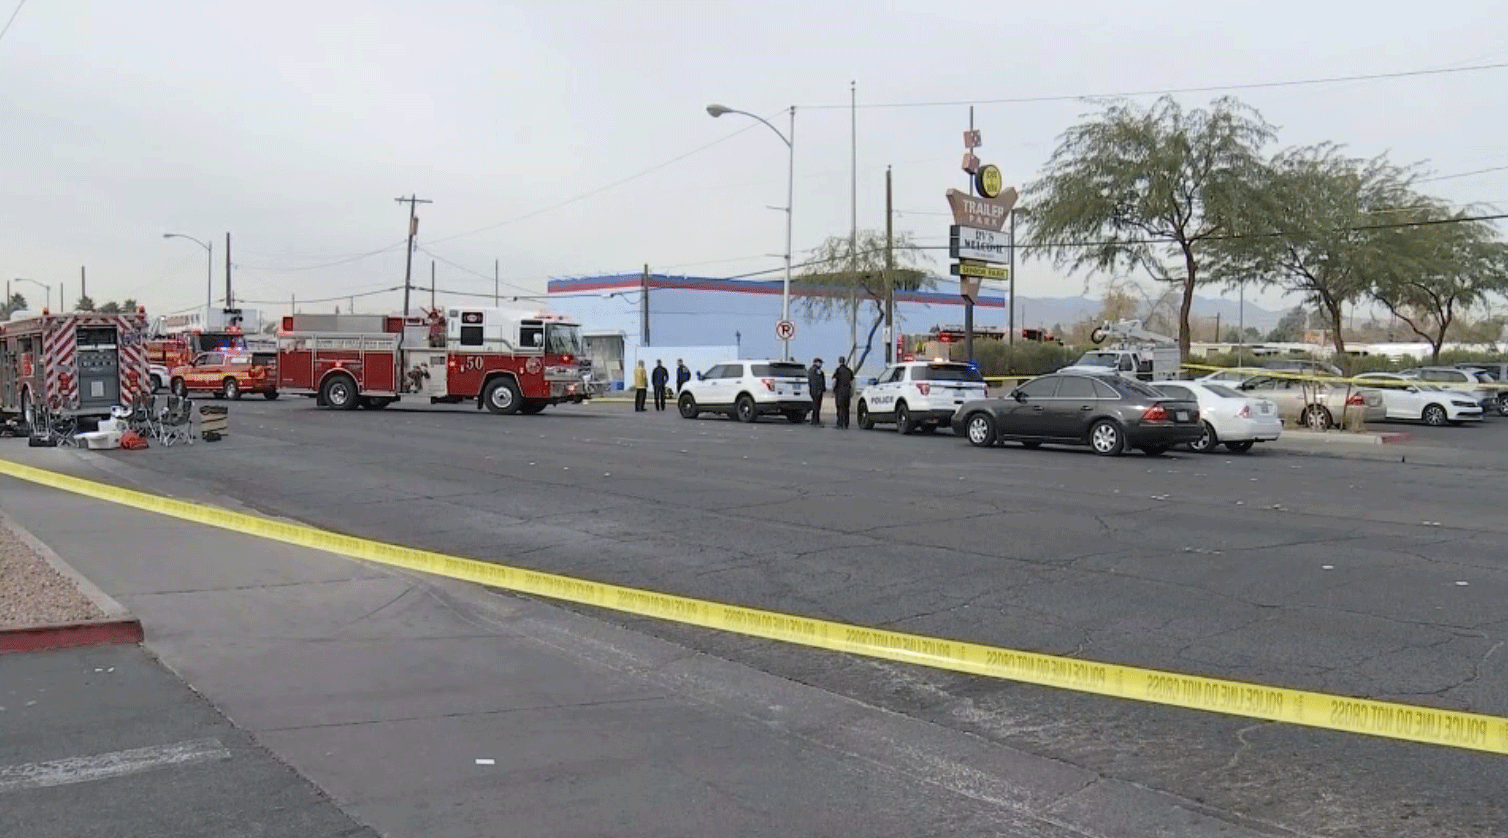 One person died in a fire in North Las Vegas on Jan. 2, 2018. (Brad Boyer/FOX5)